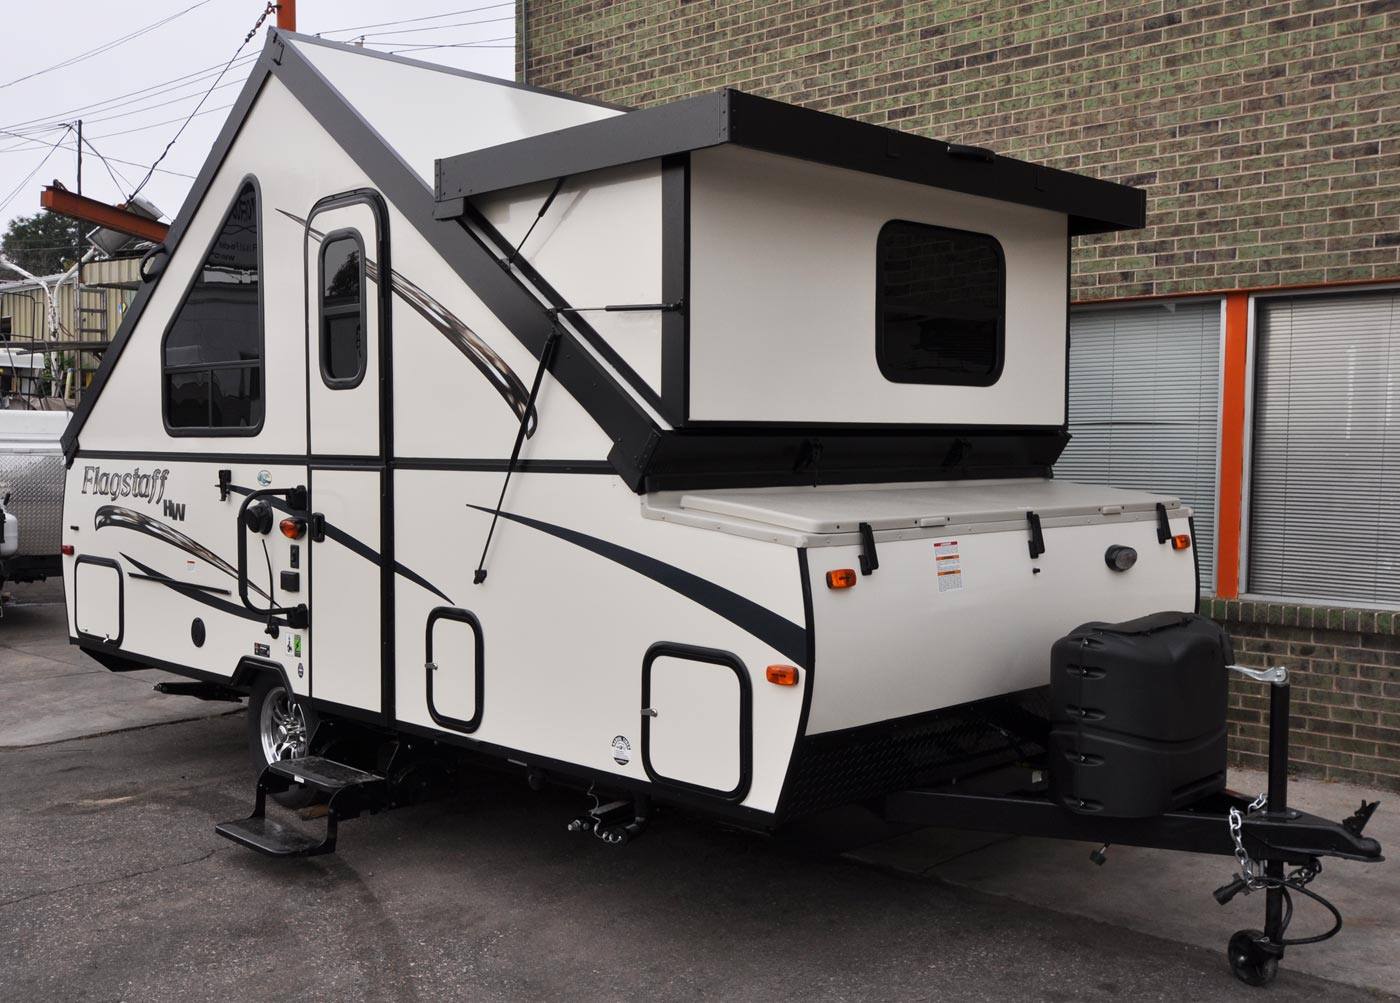 Flagstaff T21DMHW Camping Trailer | Roberts Sales - Denver, Colorado